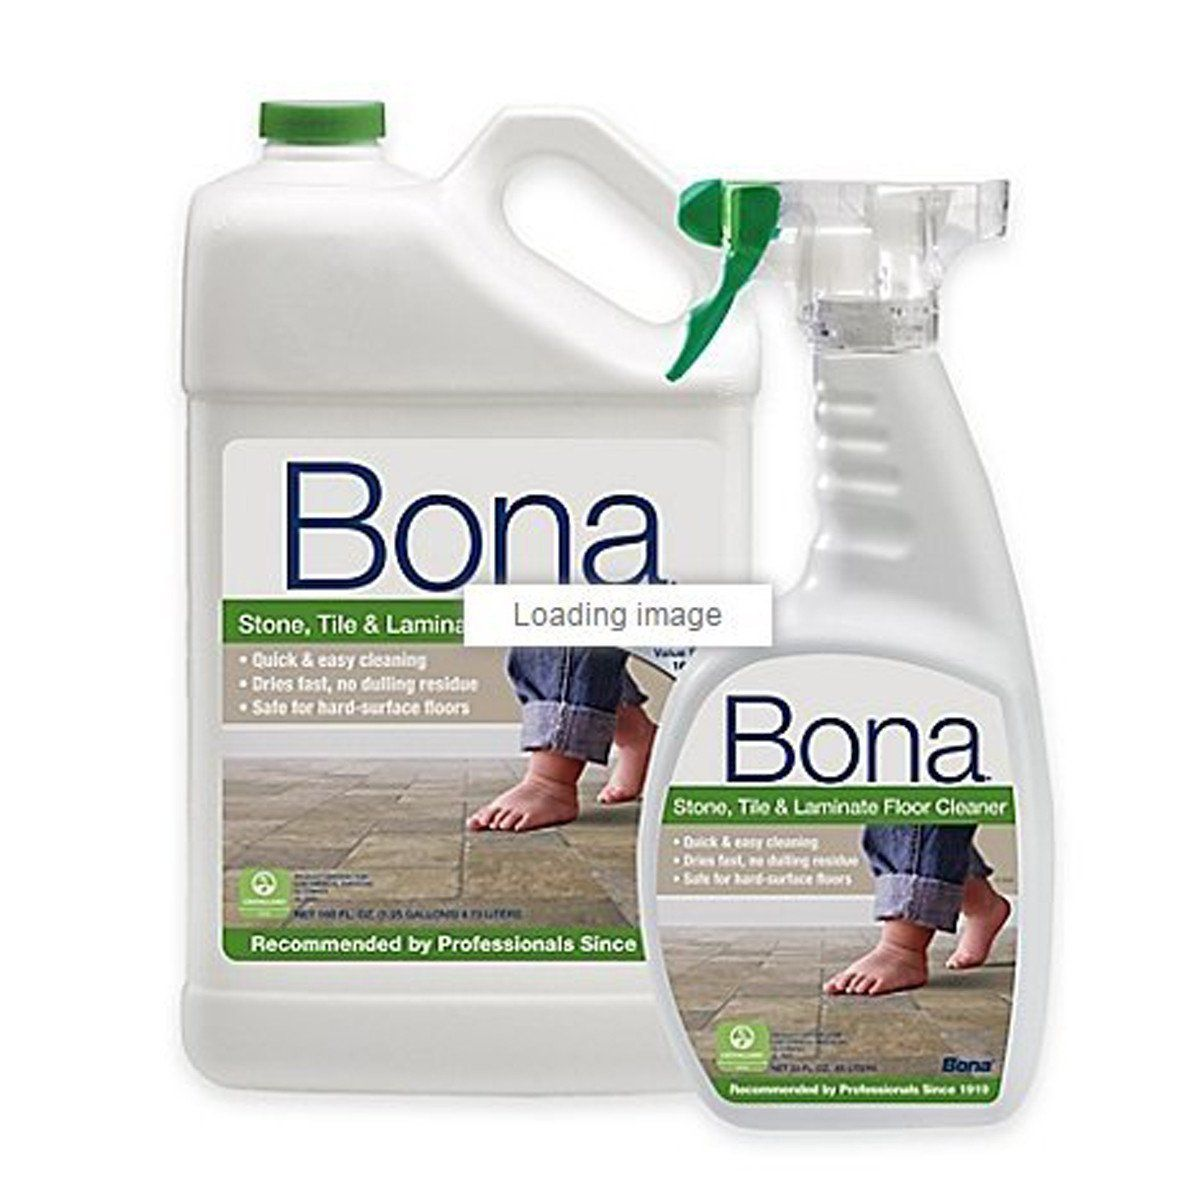 Bona Stone & Tile Cleaner Pro Series How to clean